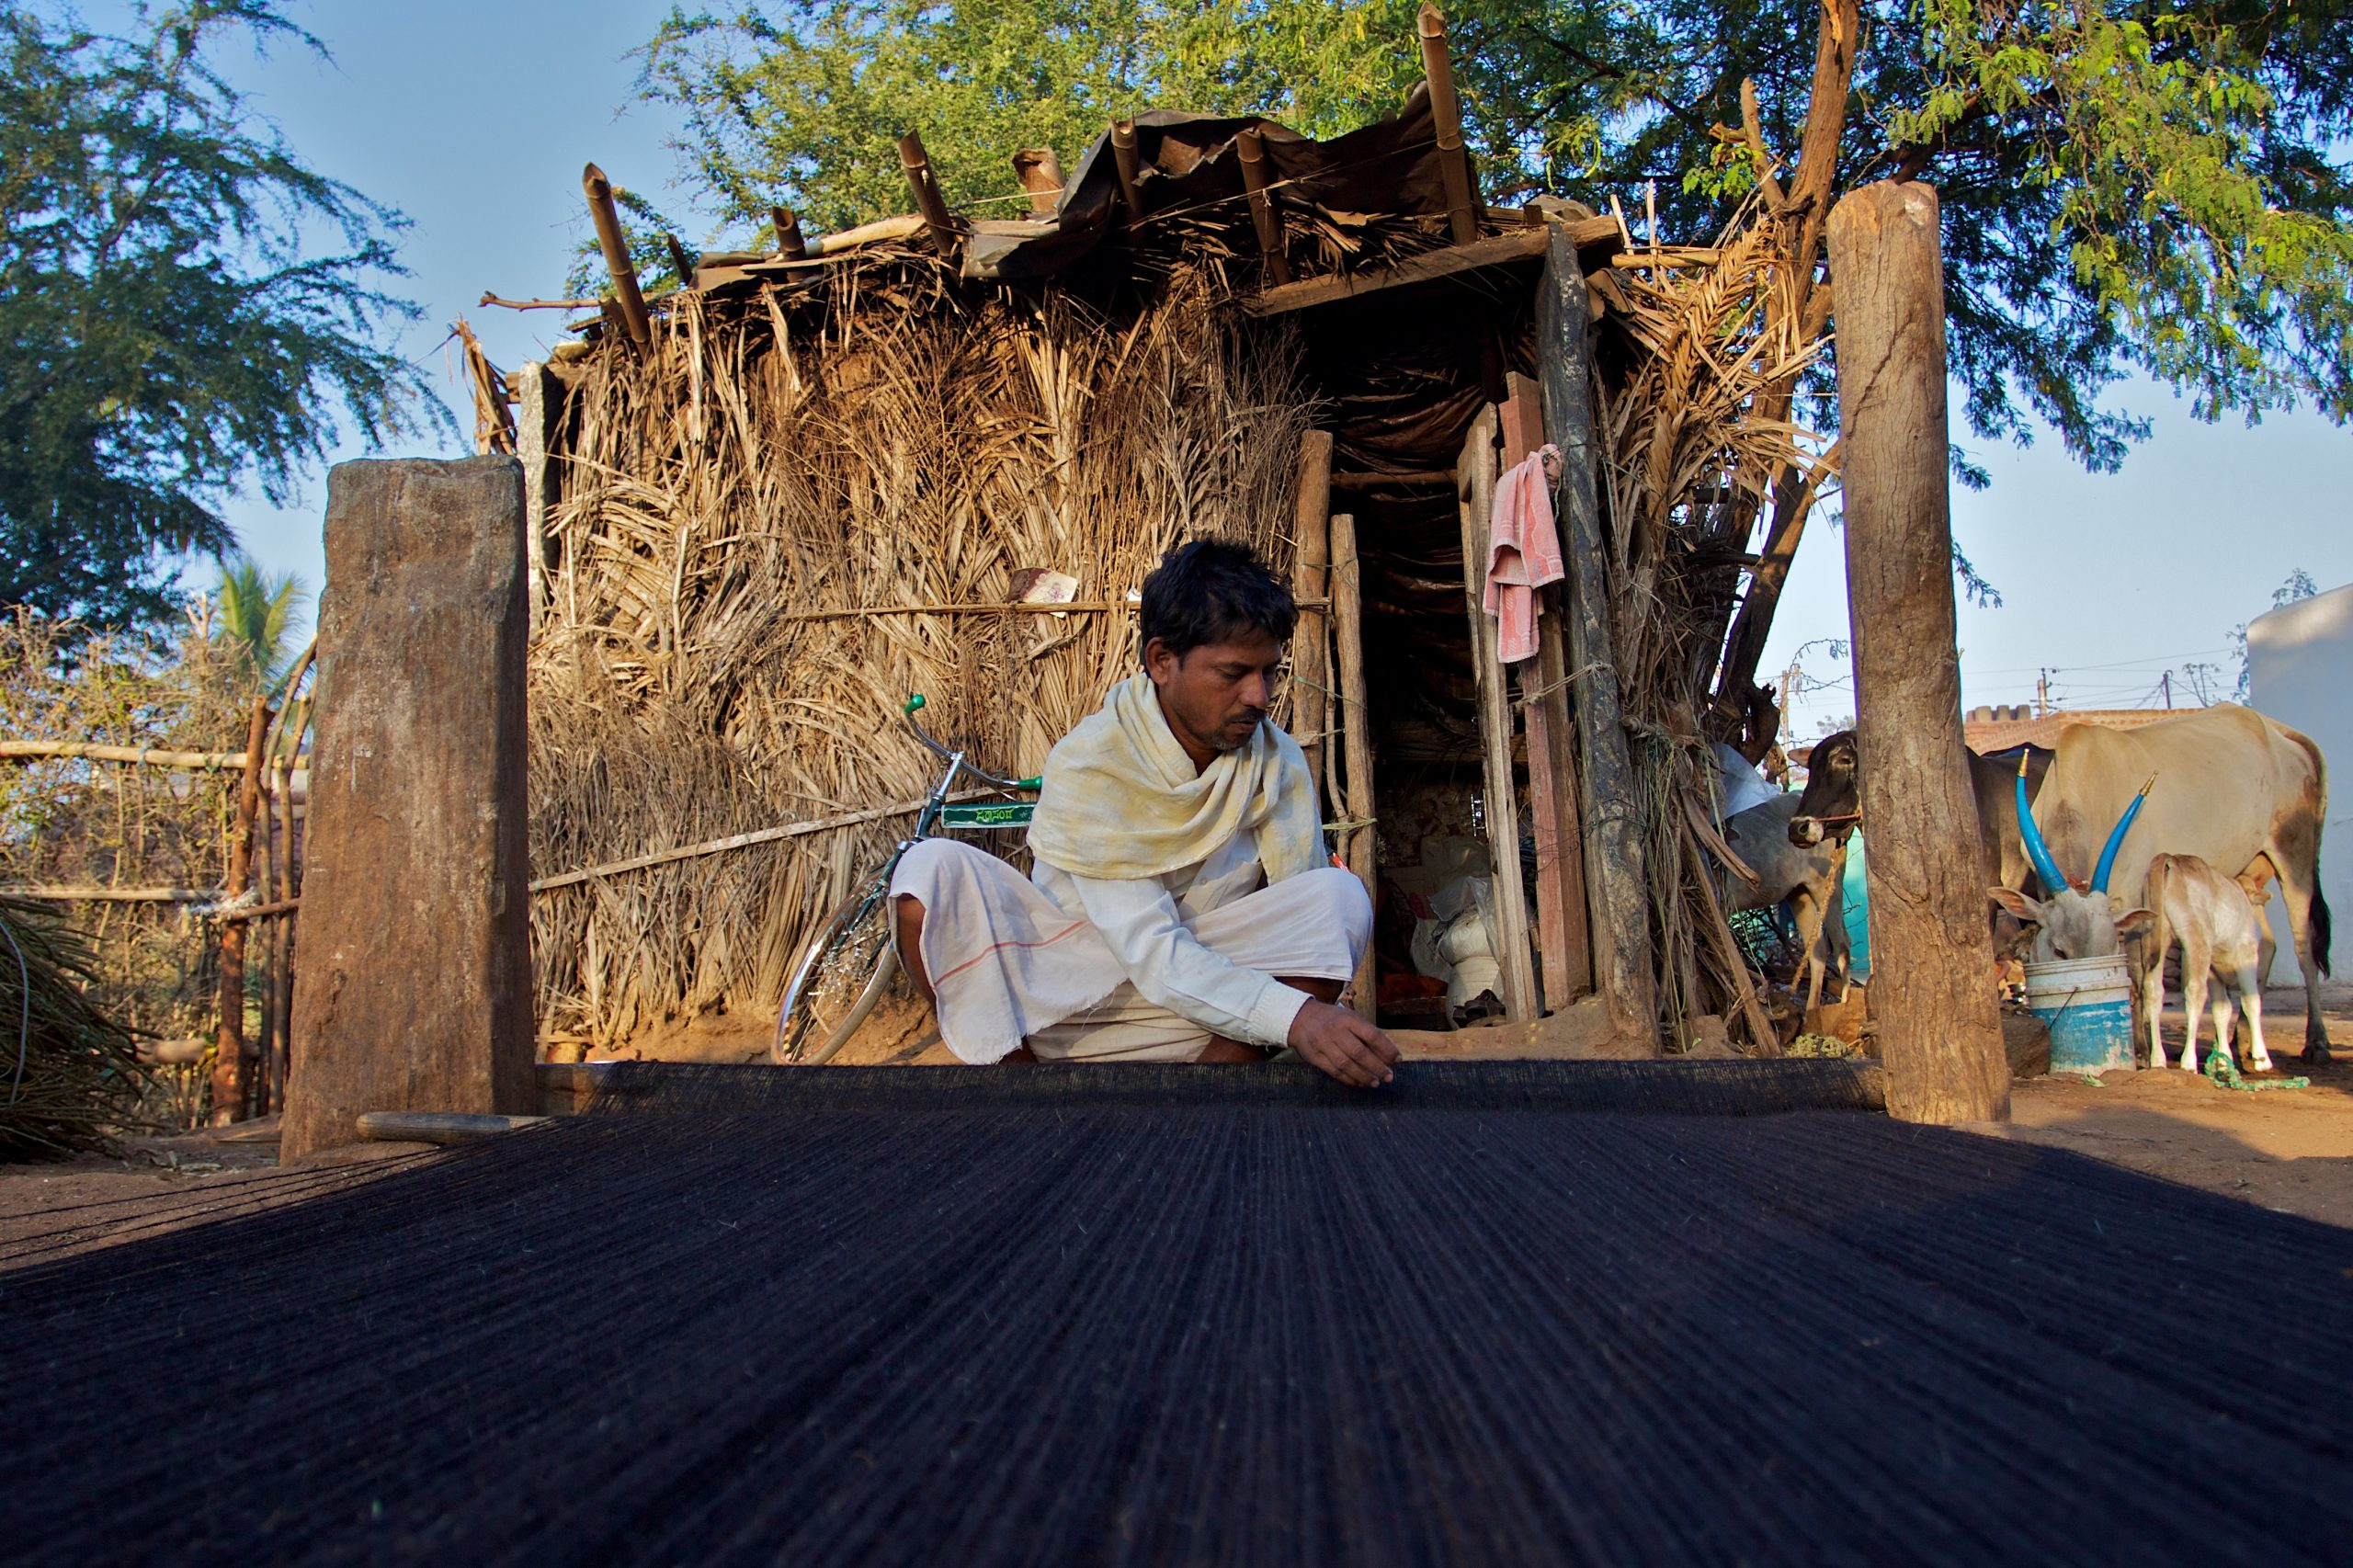 A man in rural India weaving a rug